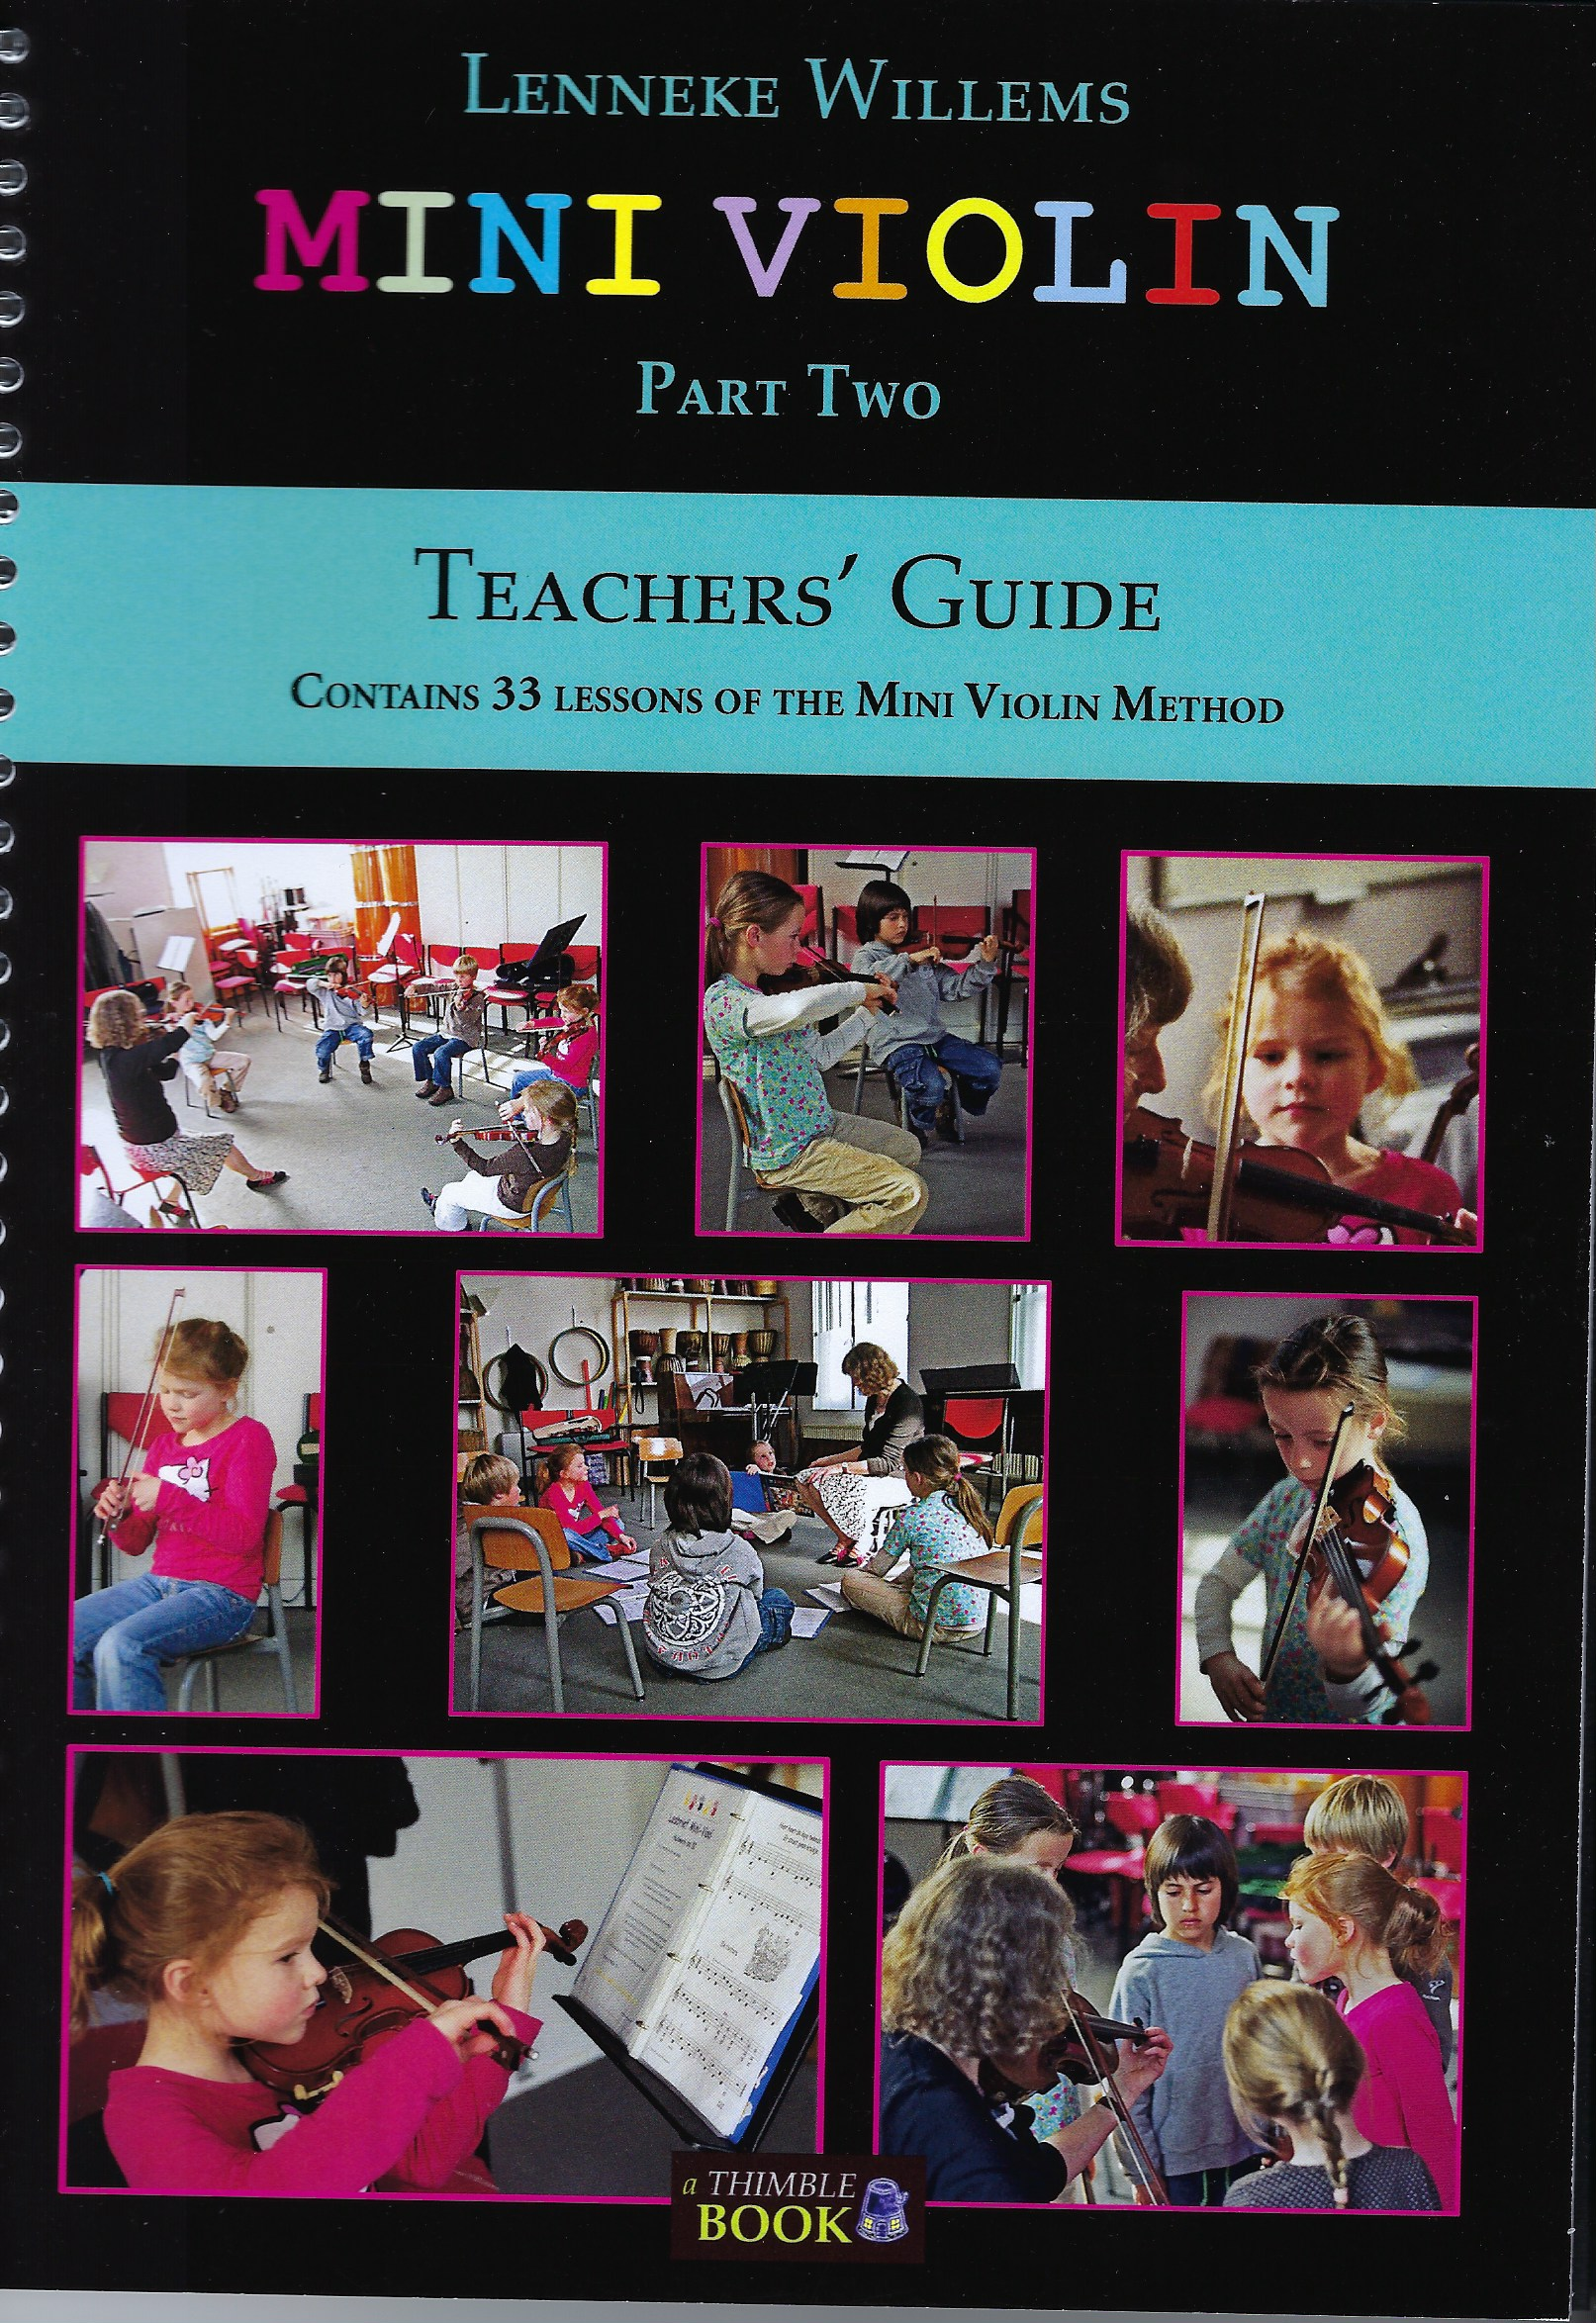 Mini Violin Part Two Teachers' Guide